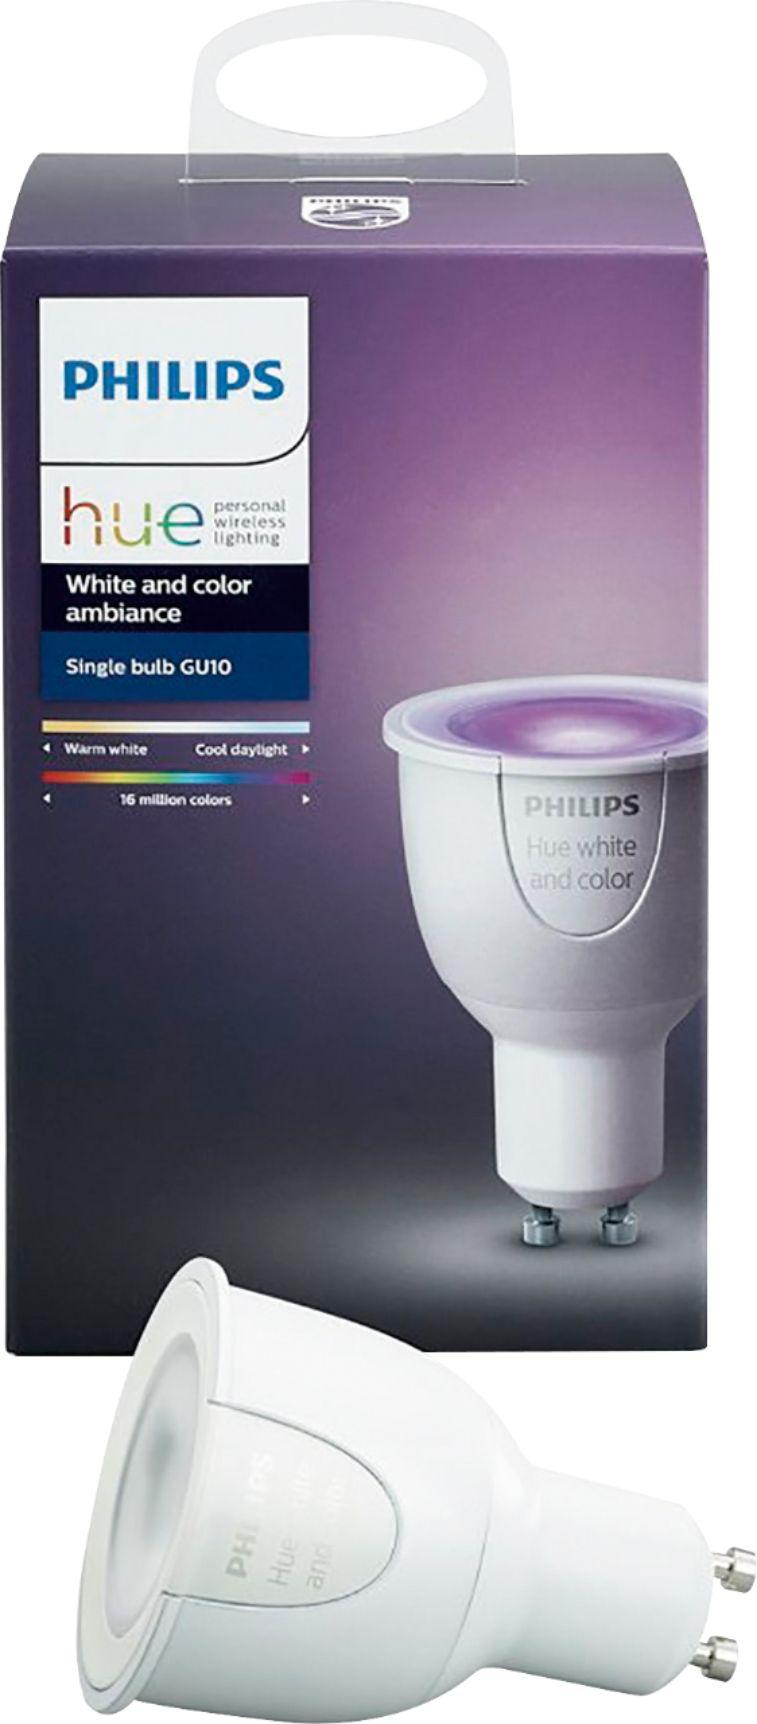 Philips Hue Gu10 White And Color